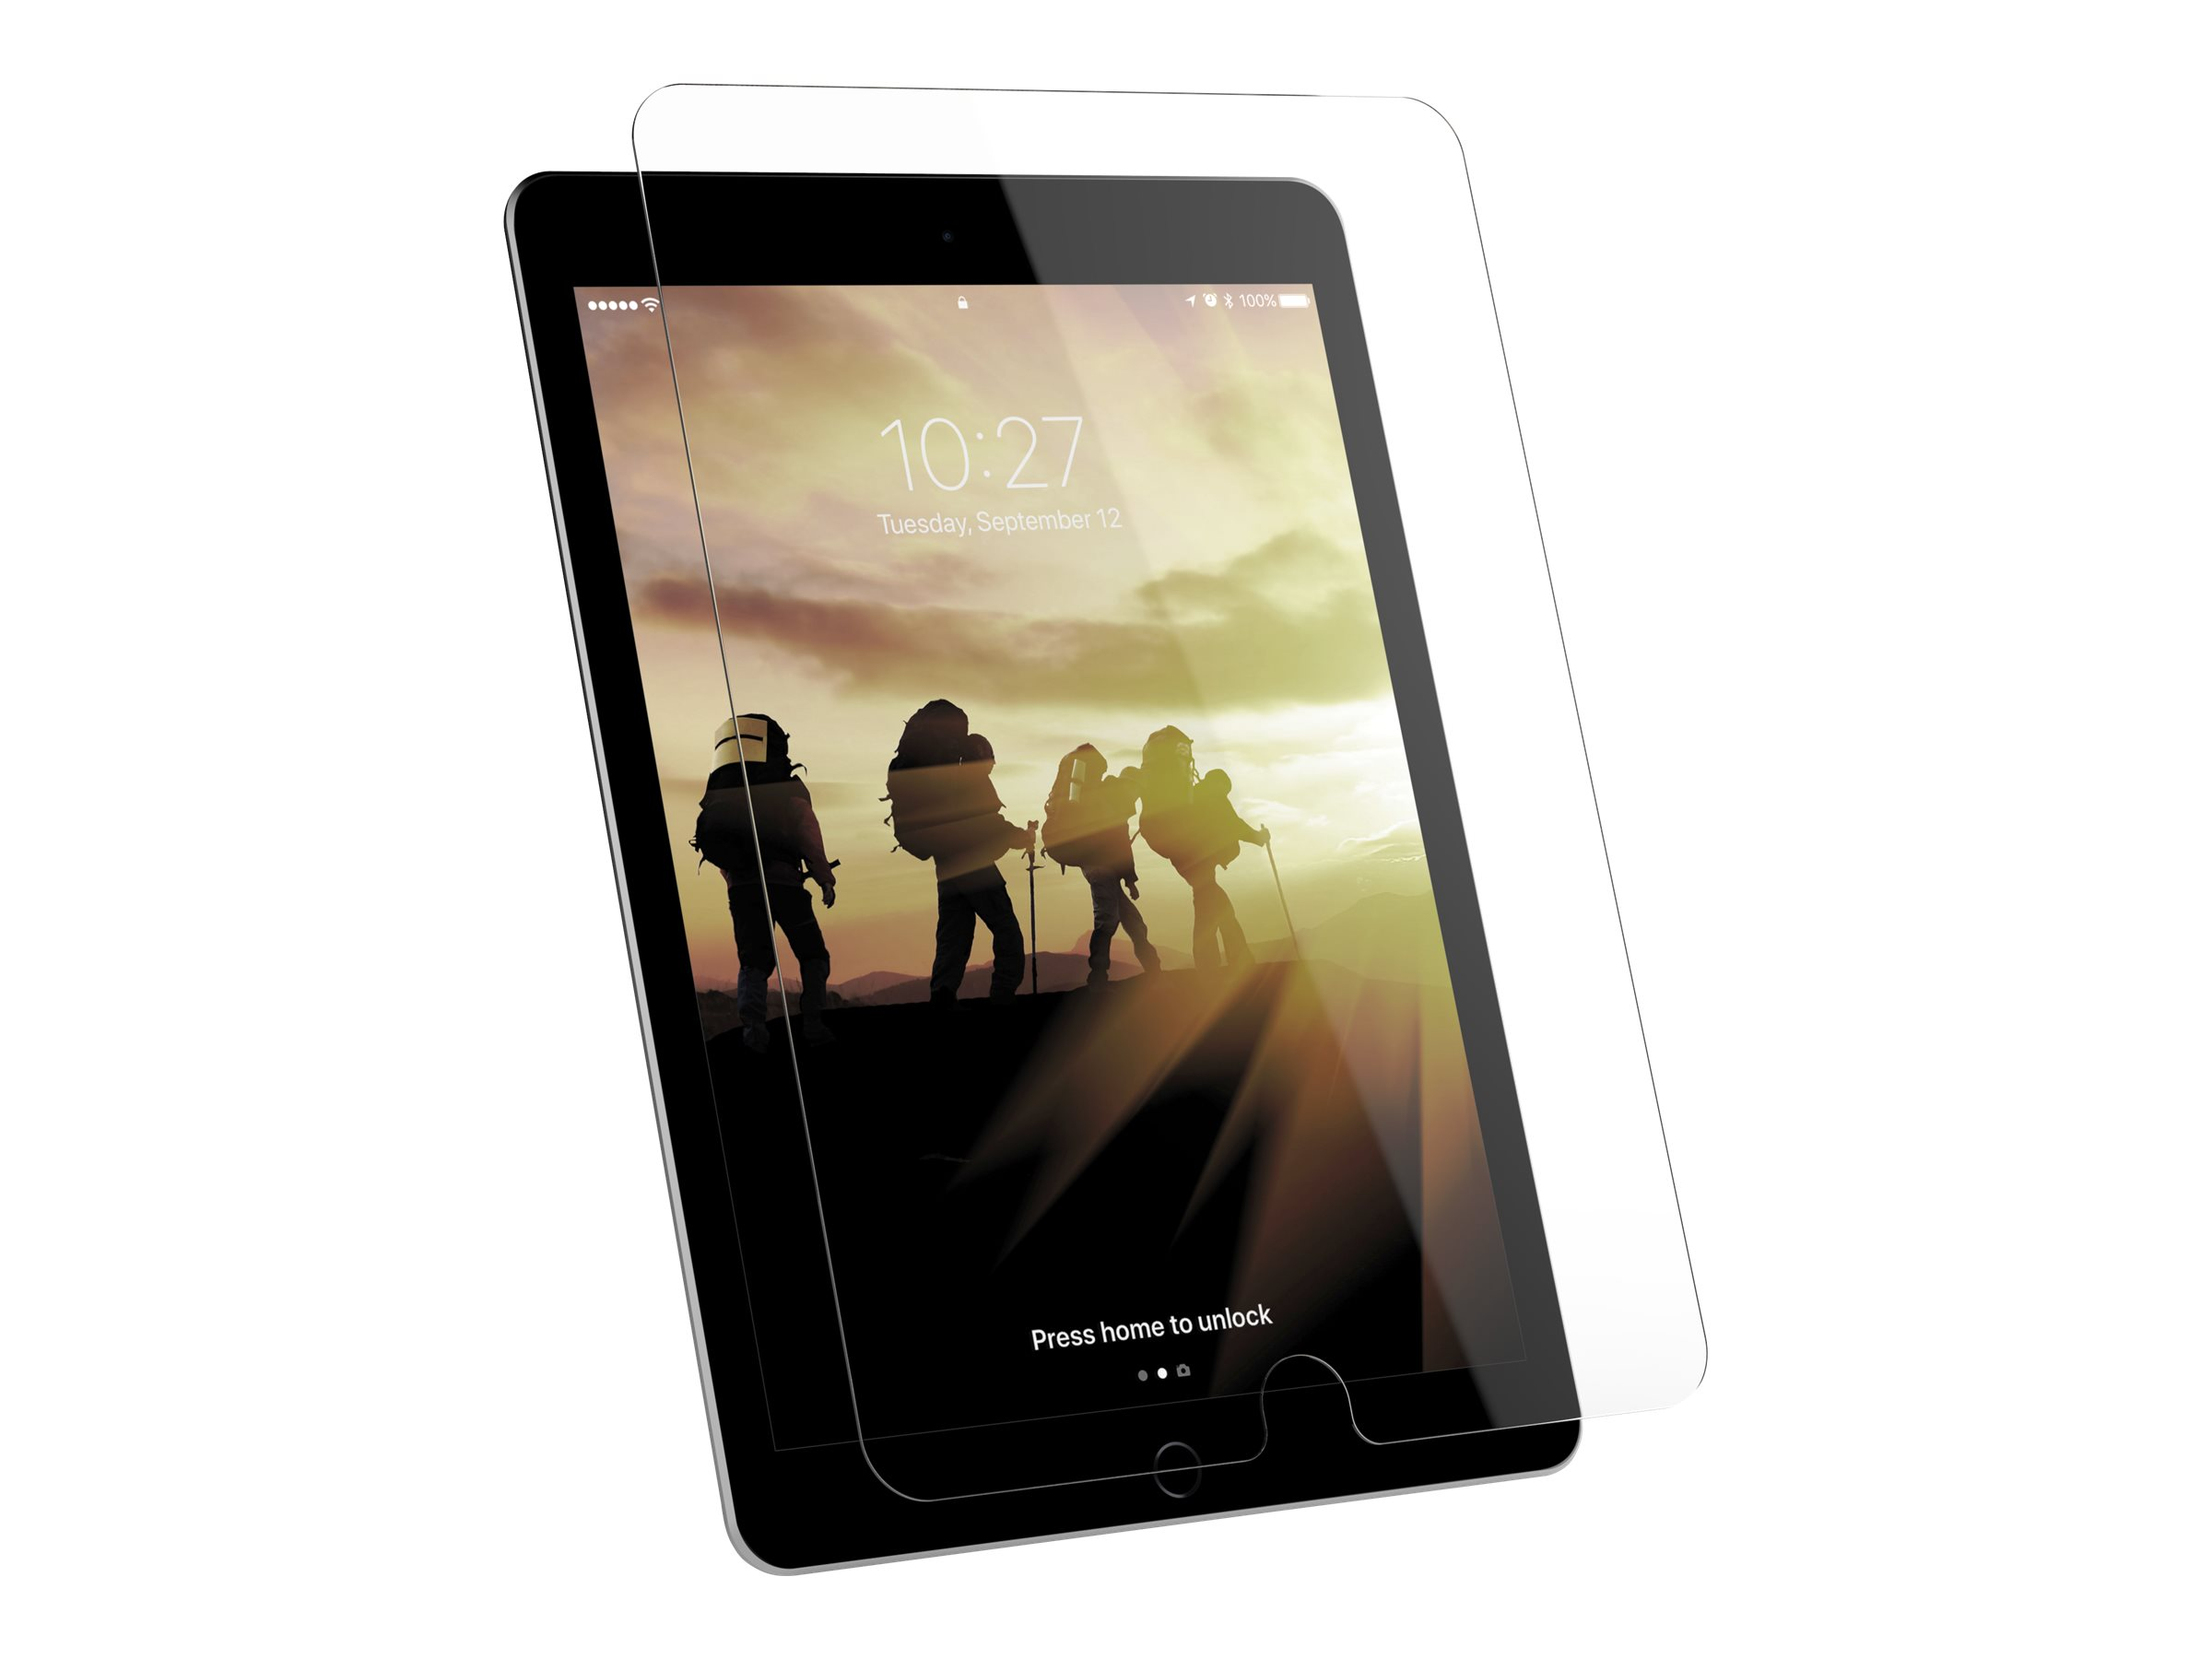 UAG Tempered Glass Shield for iPad 9.7 (5th & 6th Gen) / Pro 9.7 / Air - screen protector for tablet